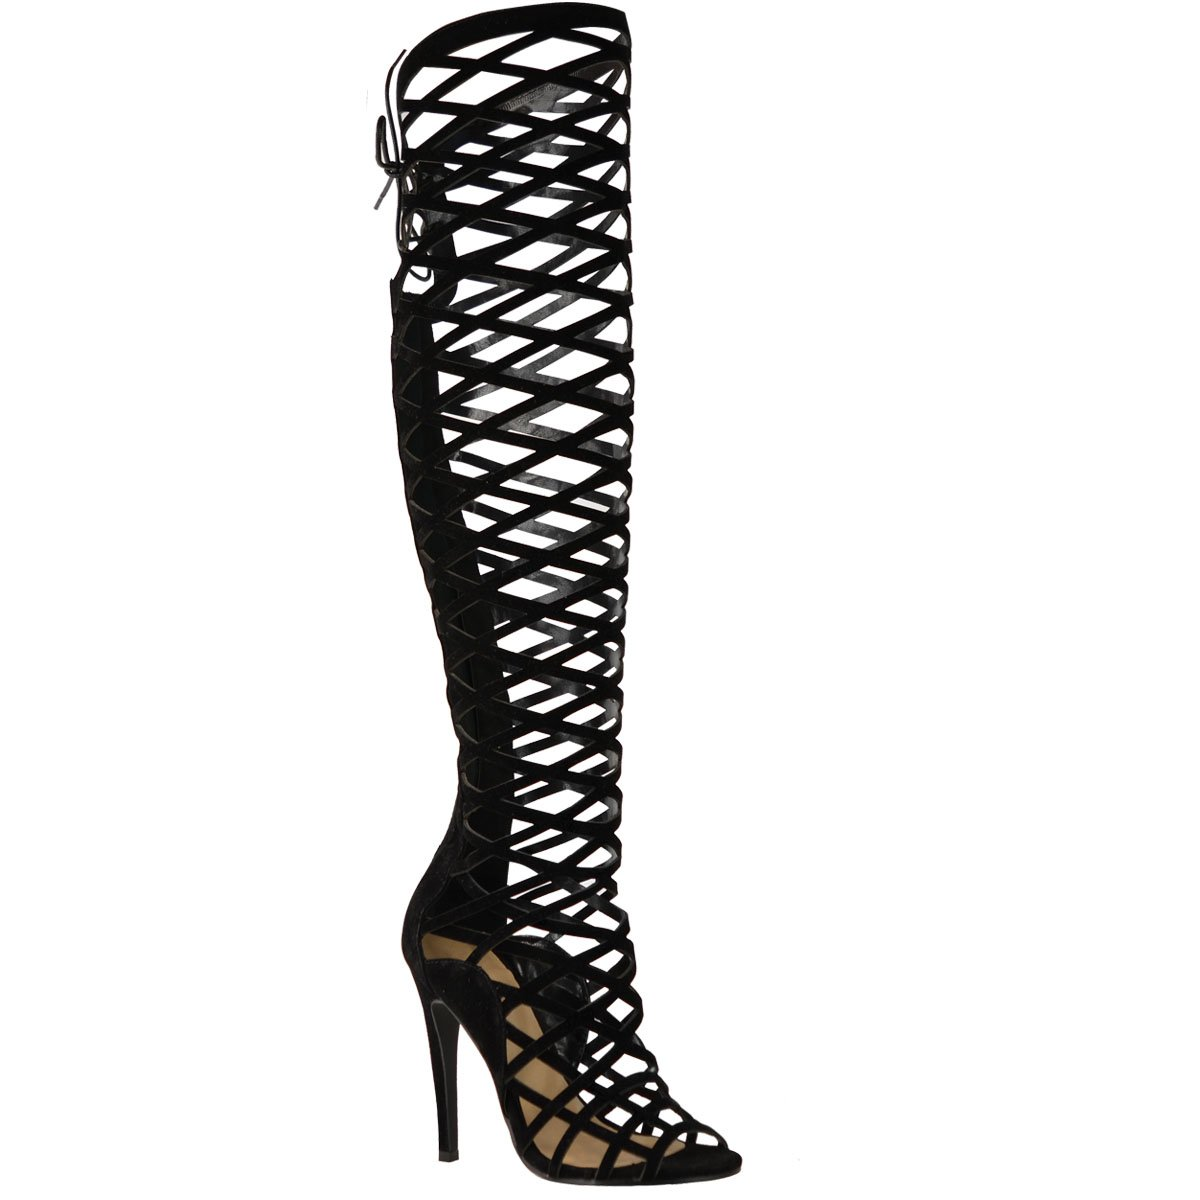 Fashion Thirsty Womens Cut Out Lace Knee High Heel Boots Gladiator Sandals Strappy Size 9